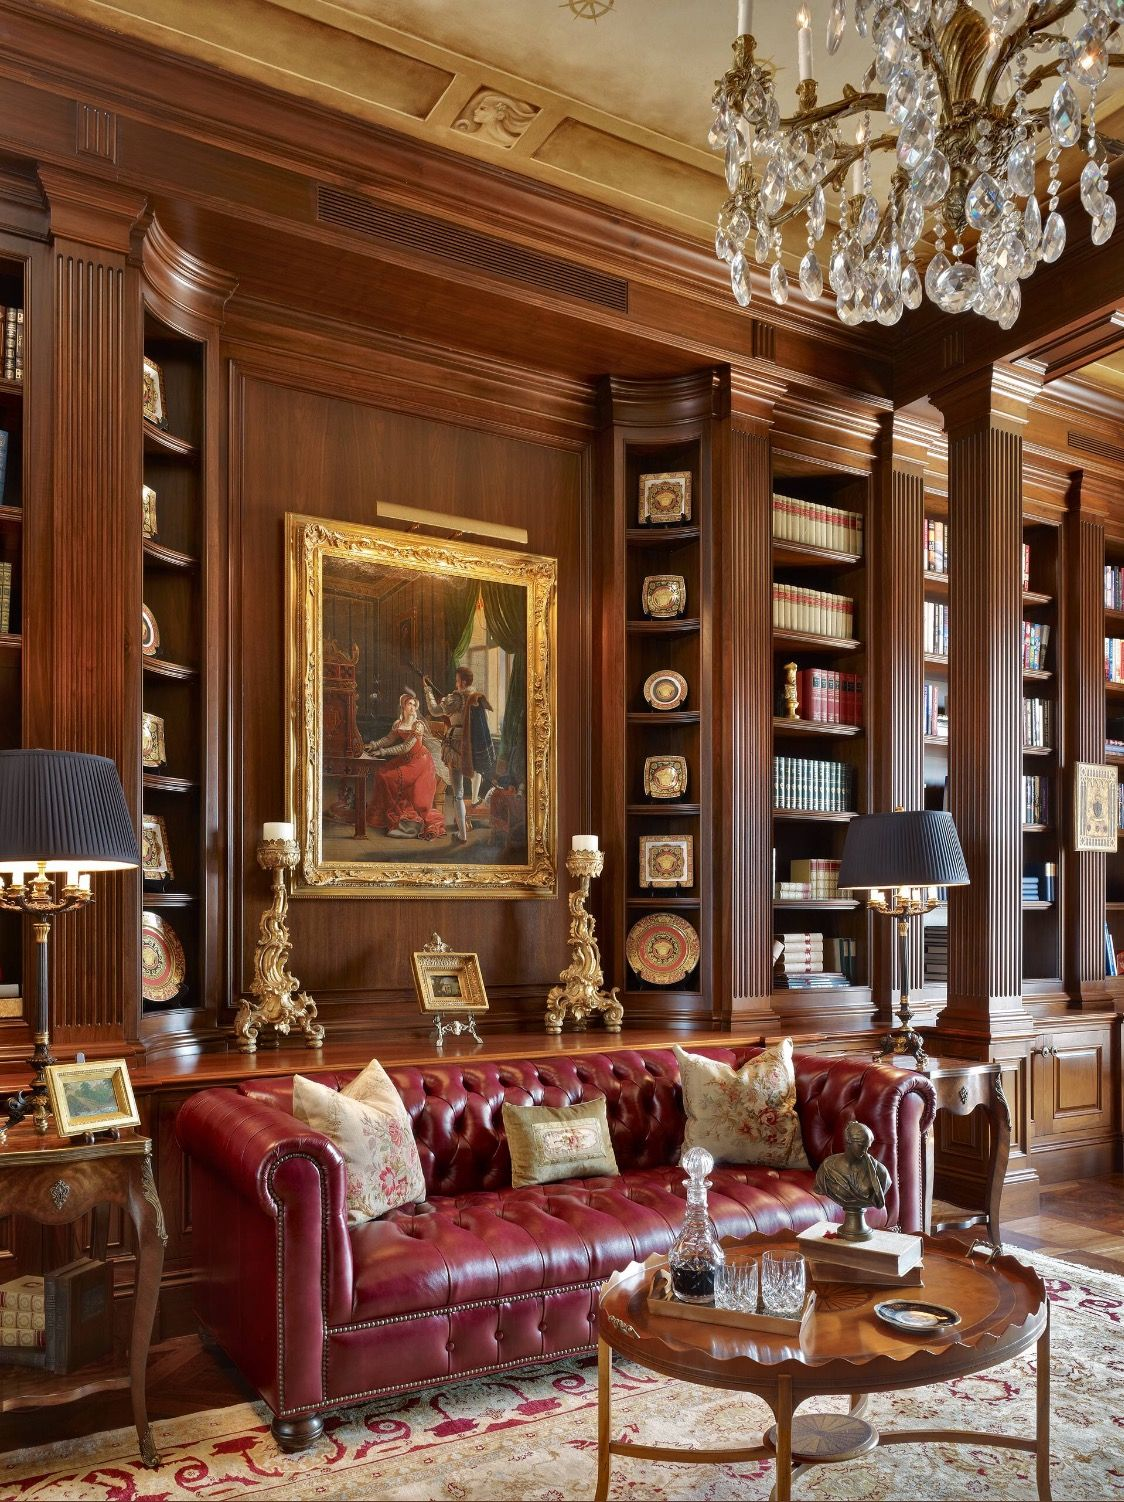 Interior Design Home Library: Home Library Design, Home Library